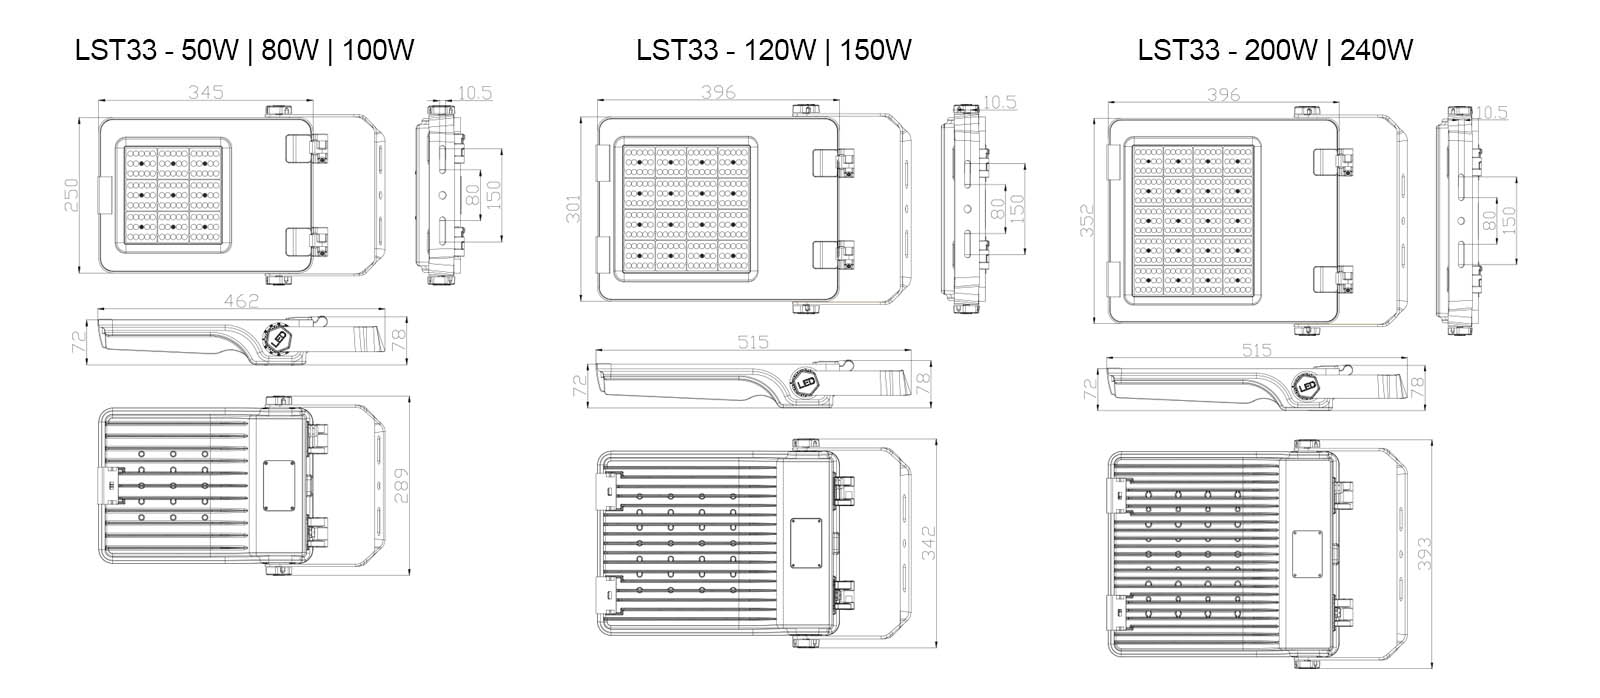 Premium LED flood light sizes